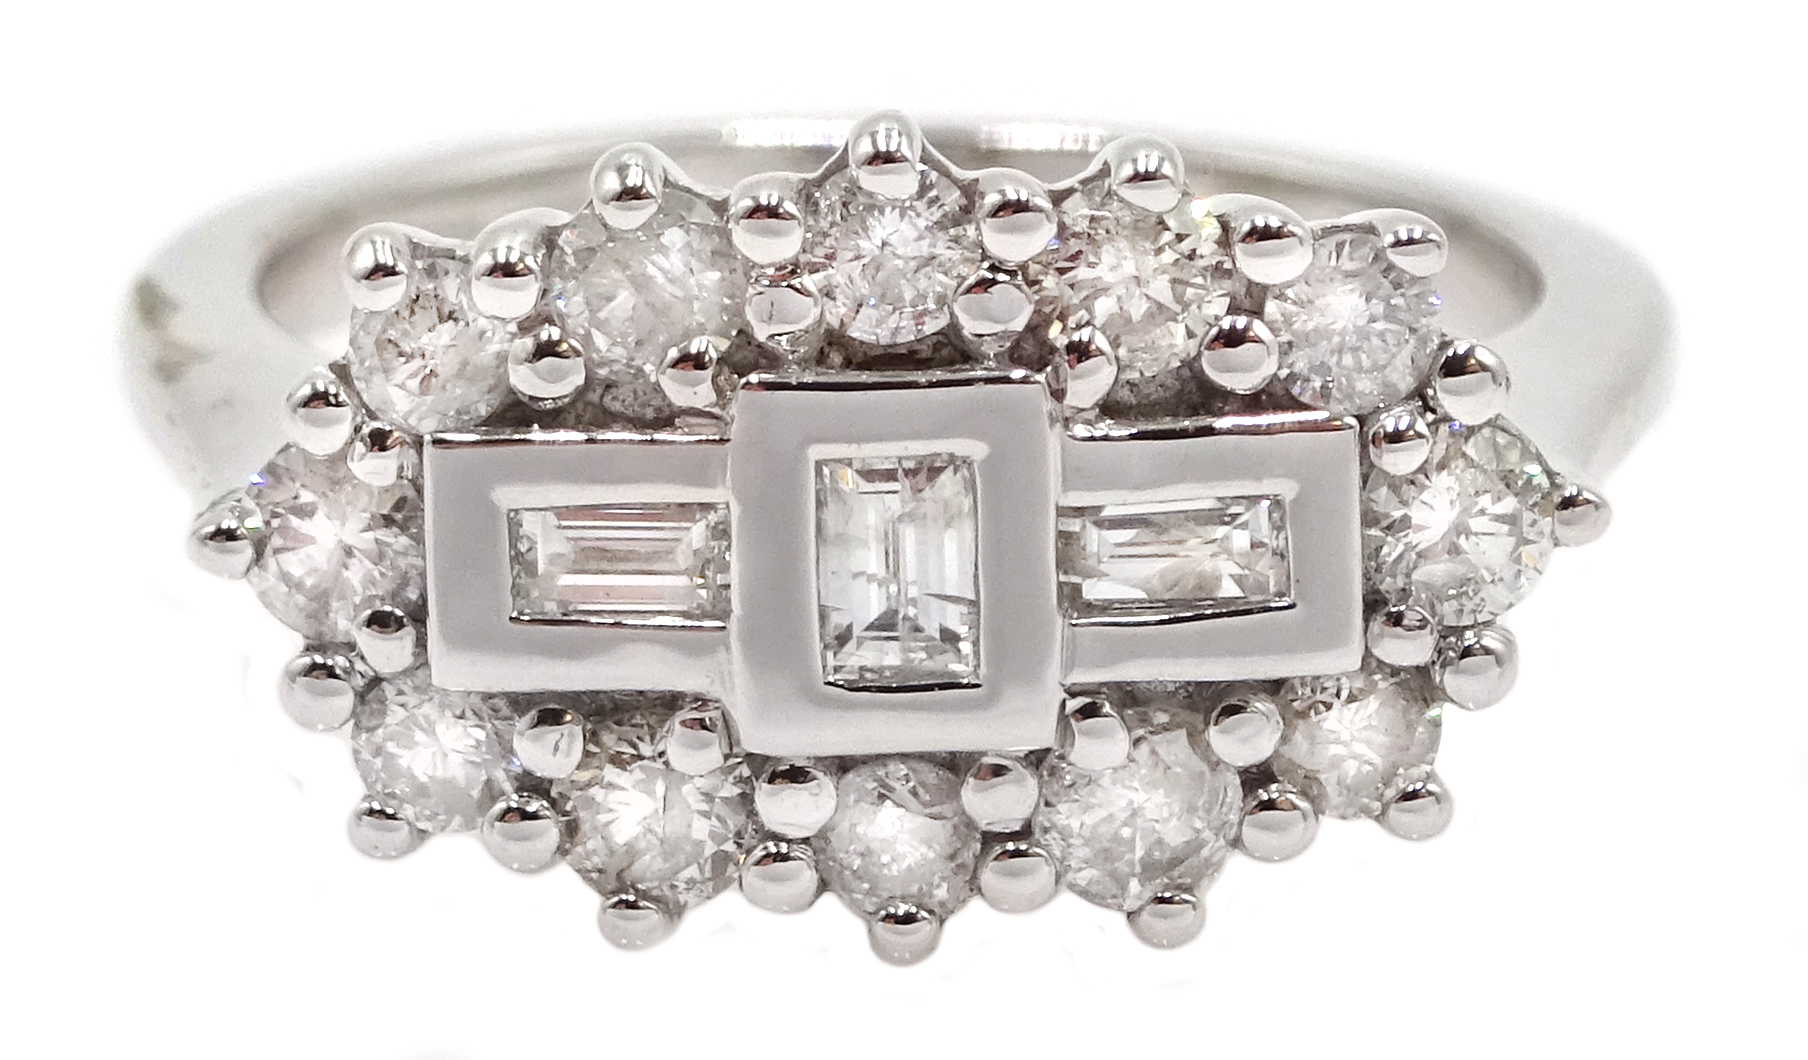 18ct white gold and diamond cluster ring, diamond total weight 0.75 carat, free UK mainland shipping